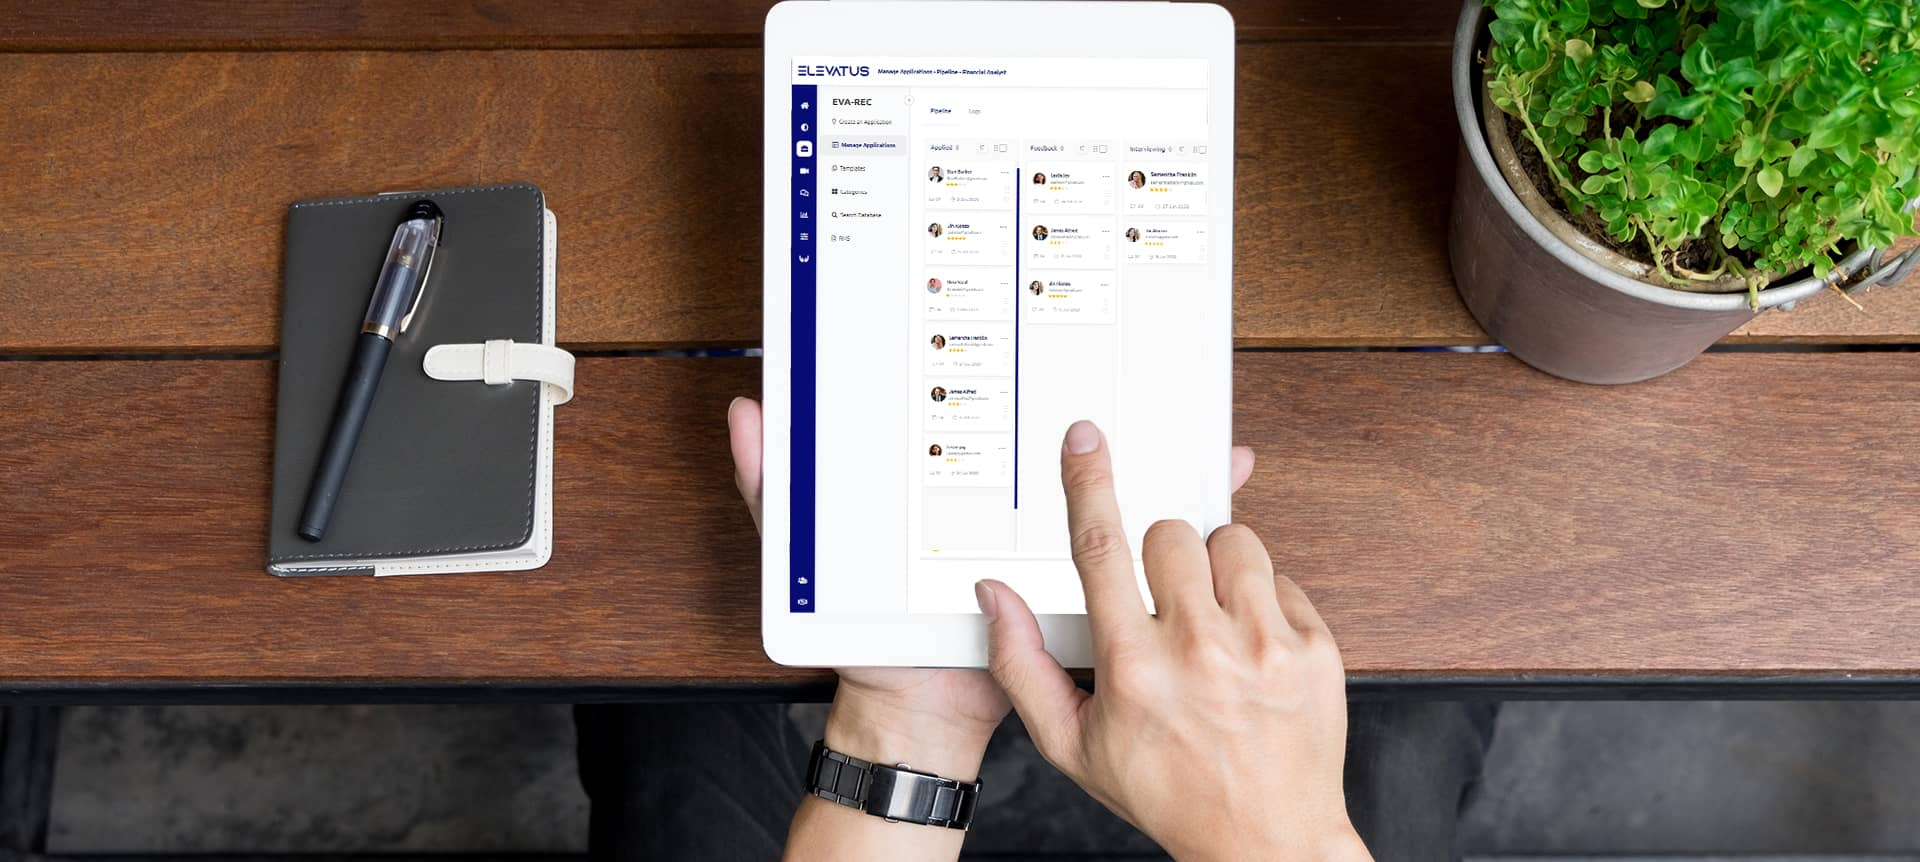 Recruitment software being used on an iPad